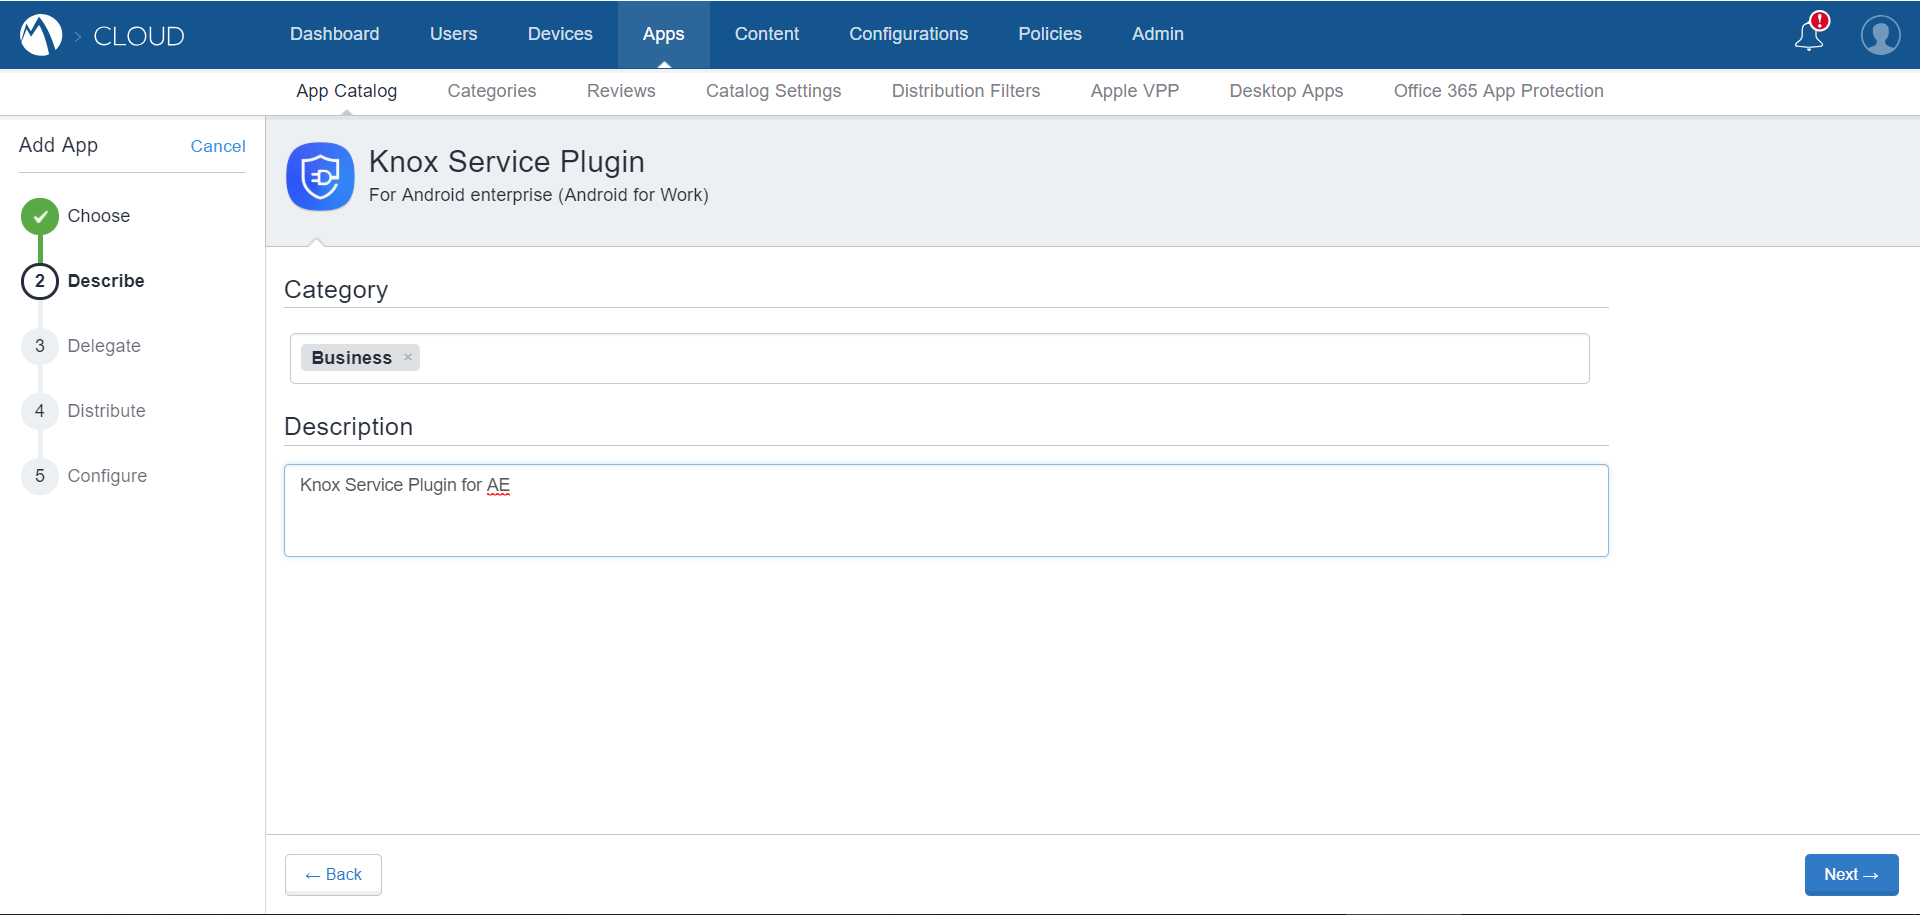 MobileIron Cloud App Catalog - Knox Service Plugin - Describe App page